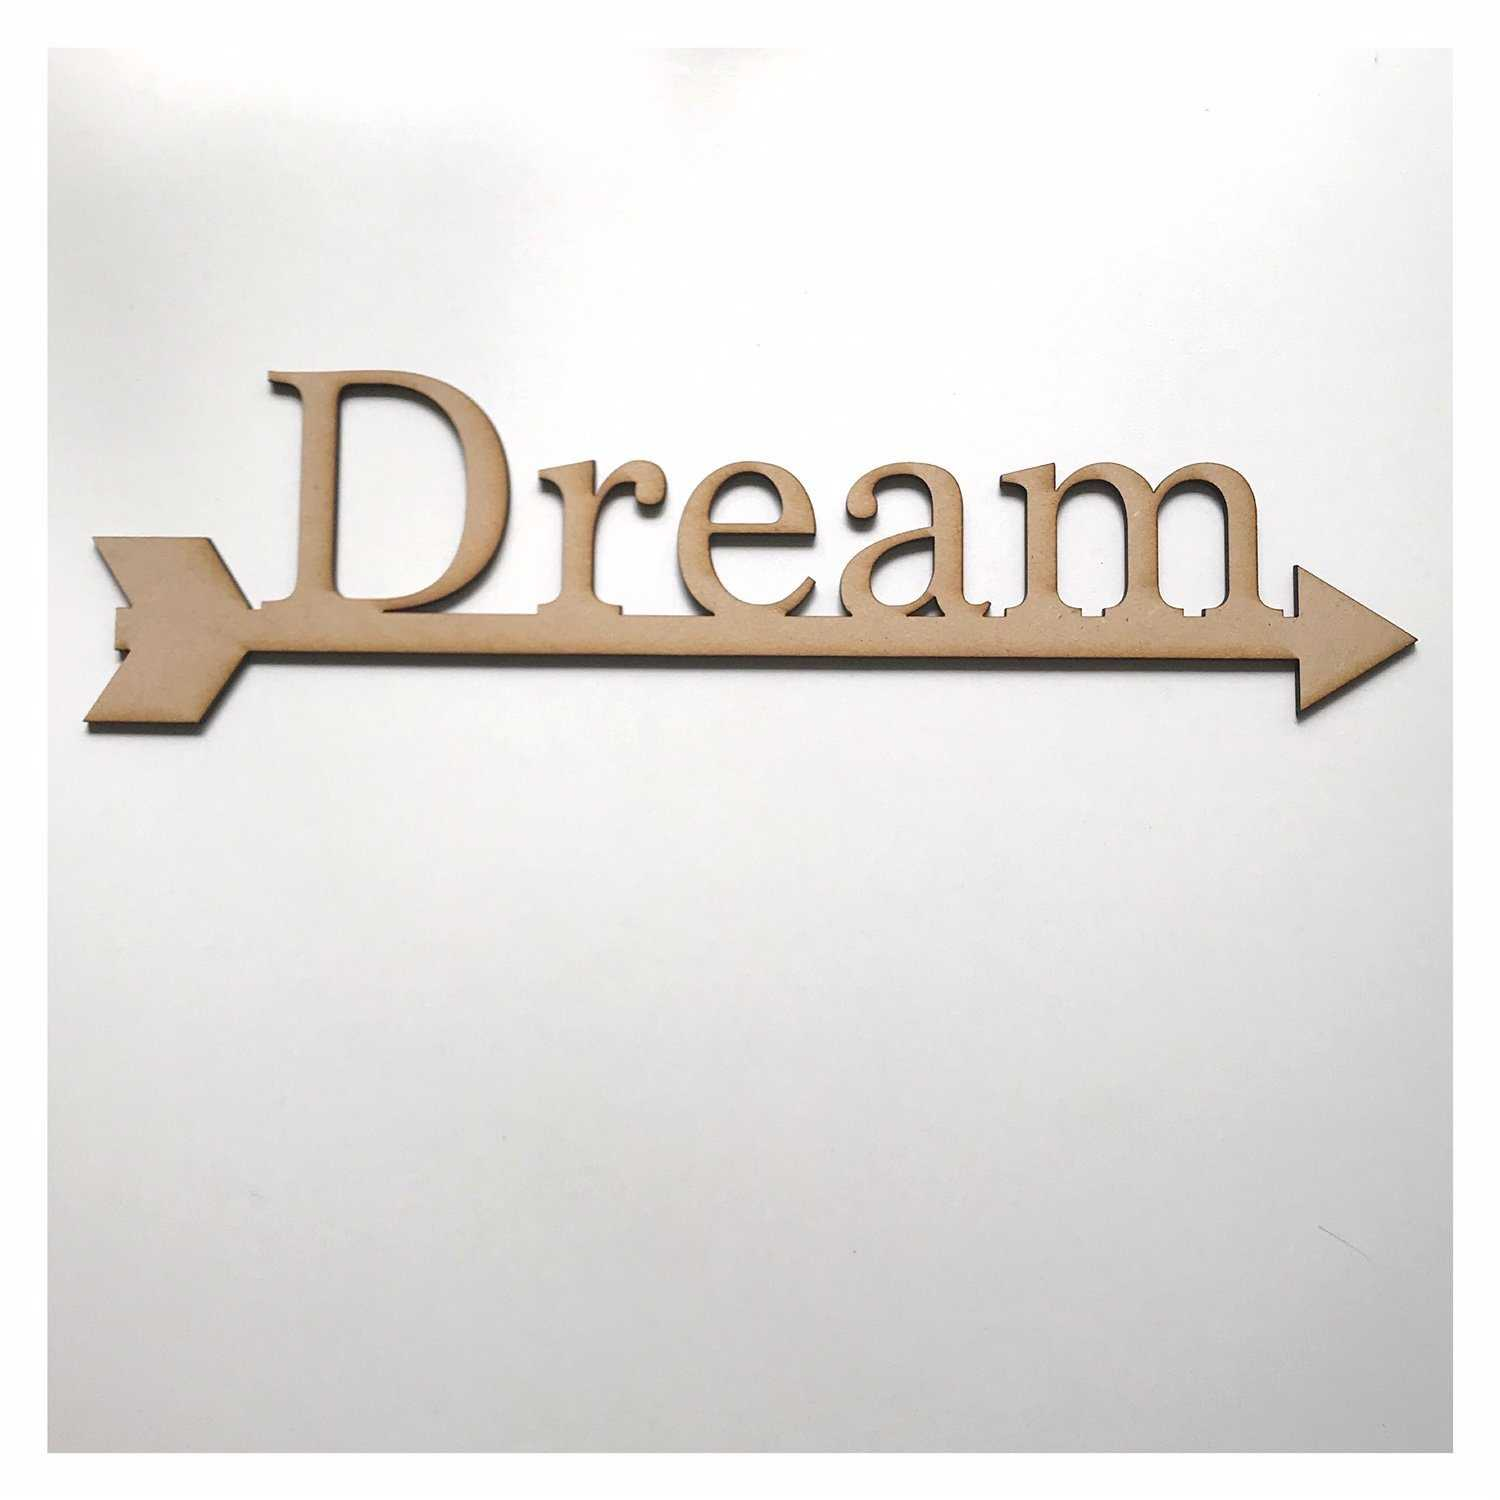 Dream with Arrow Sign County Shabby Chic MDF Wooden Word Shape Raw